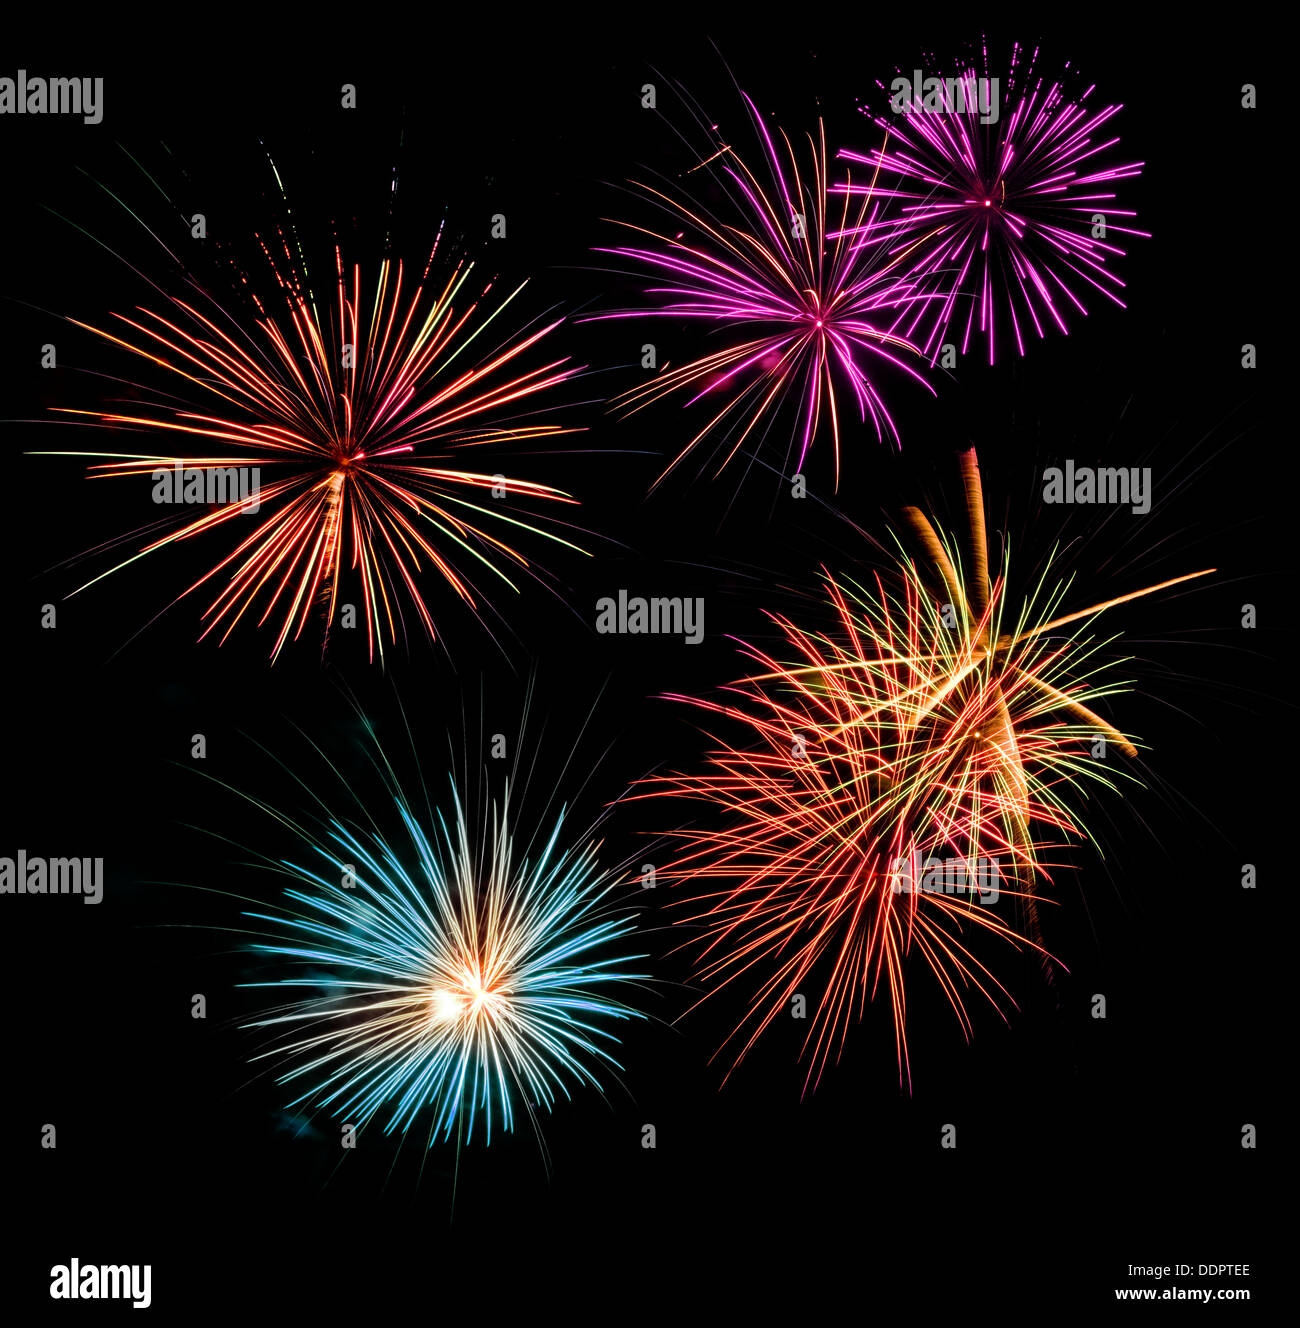 Multicolored fireworks display in a black night sky - Stock Image